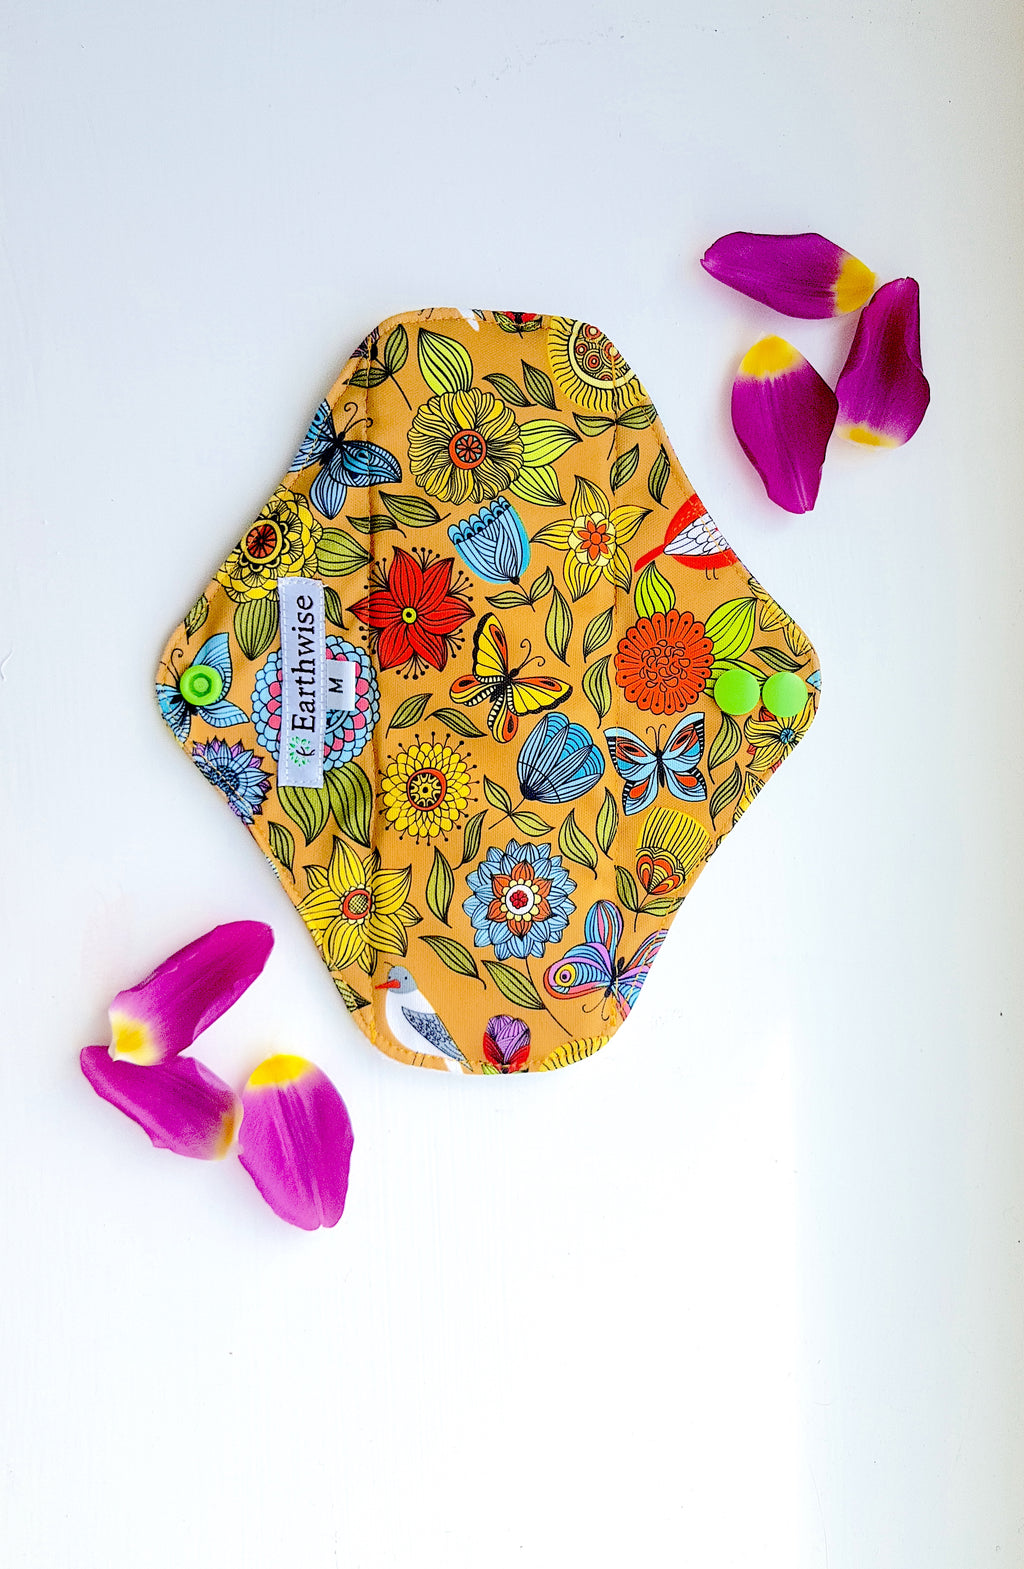 Reusable 'Earthwise' Sanitary Pads: Exotic (S/M/L) - Zero Waste Shop, Reusable Sanitary Pad - Eco + Plant-Based Lifestyle, G.0 - Generation Zero Uk, G.0 - G.0